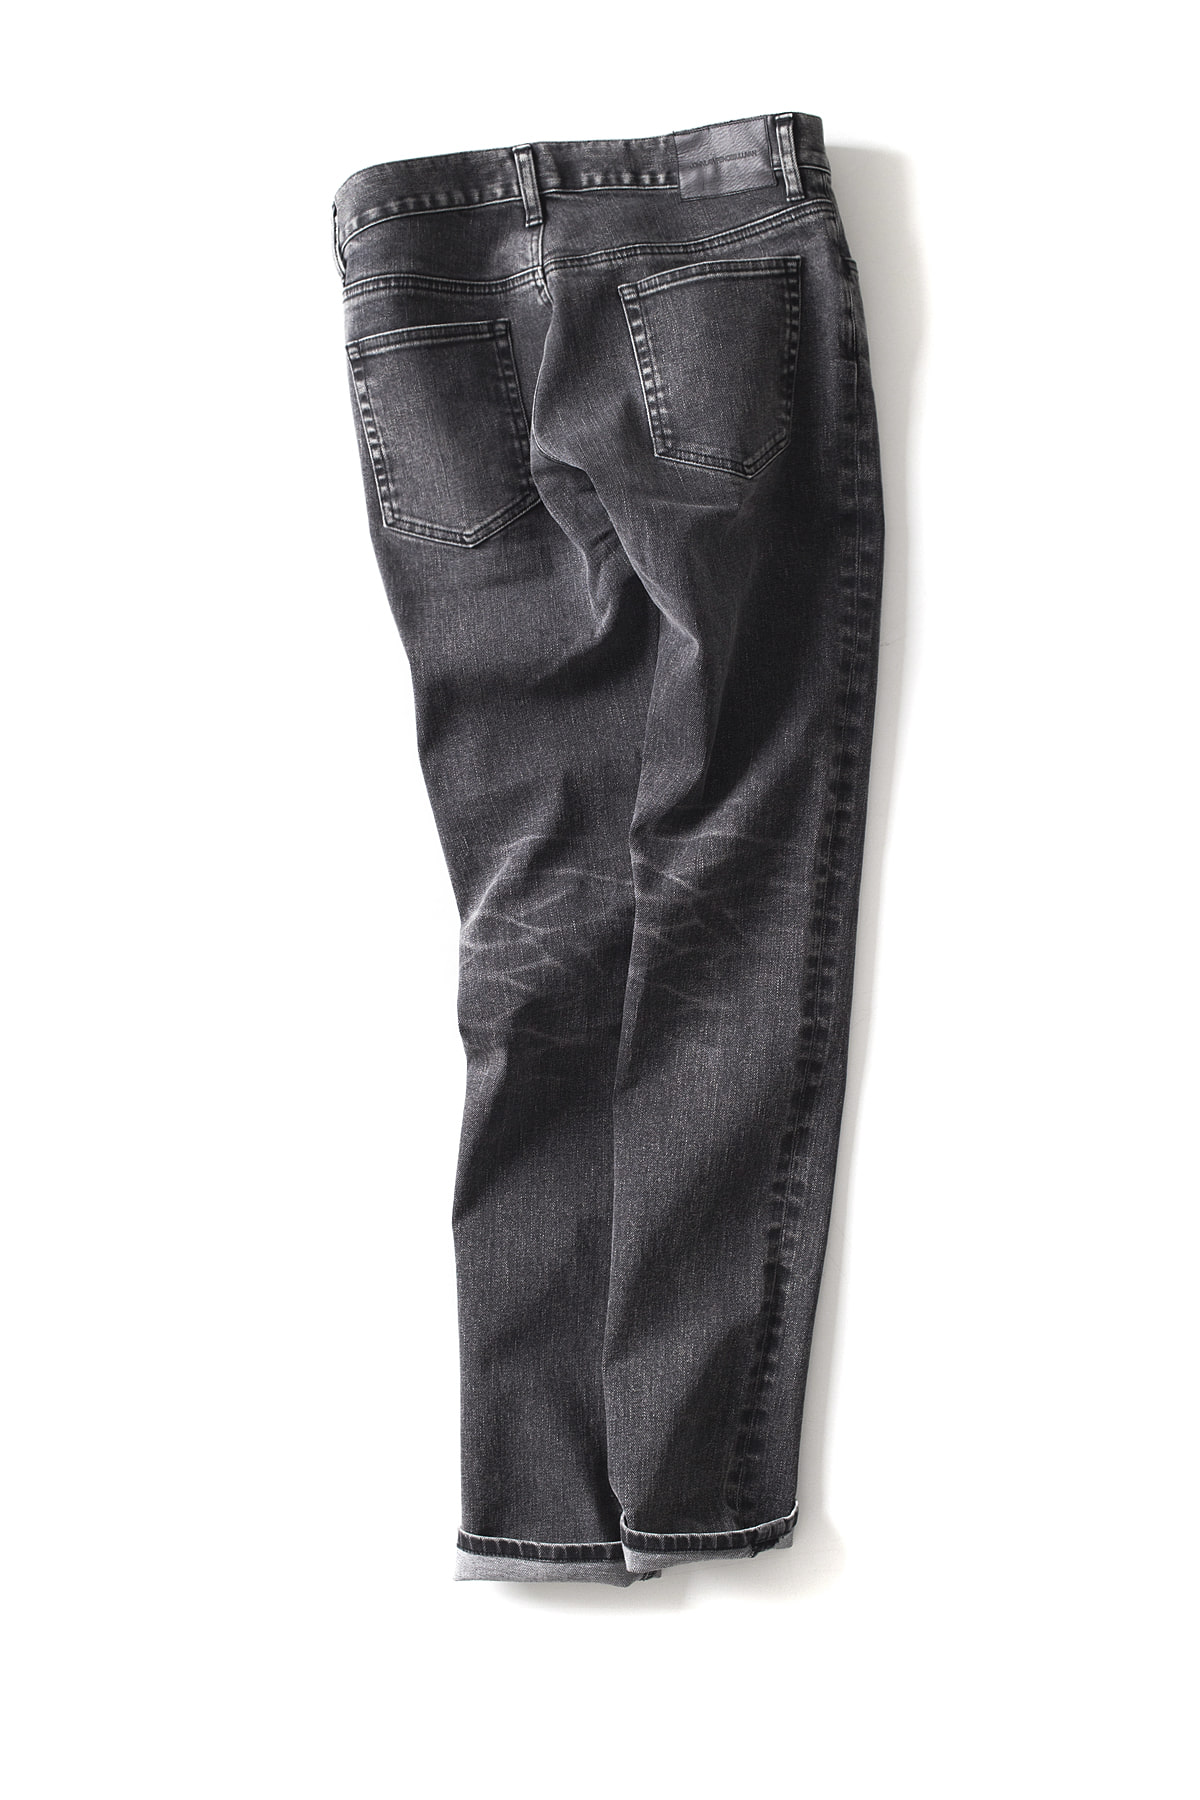 JOHN LAWRENCE SULLIVAN : Tapared Jeans (Black)